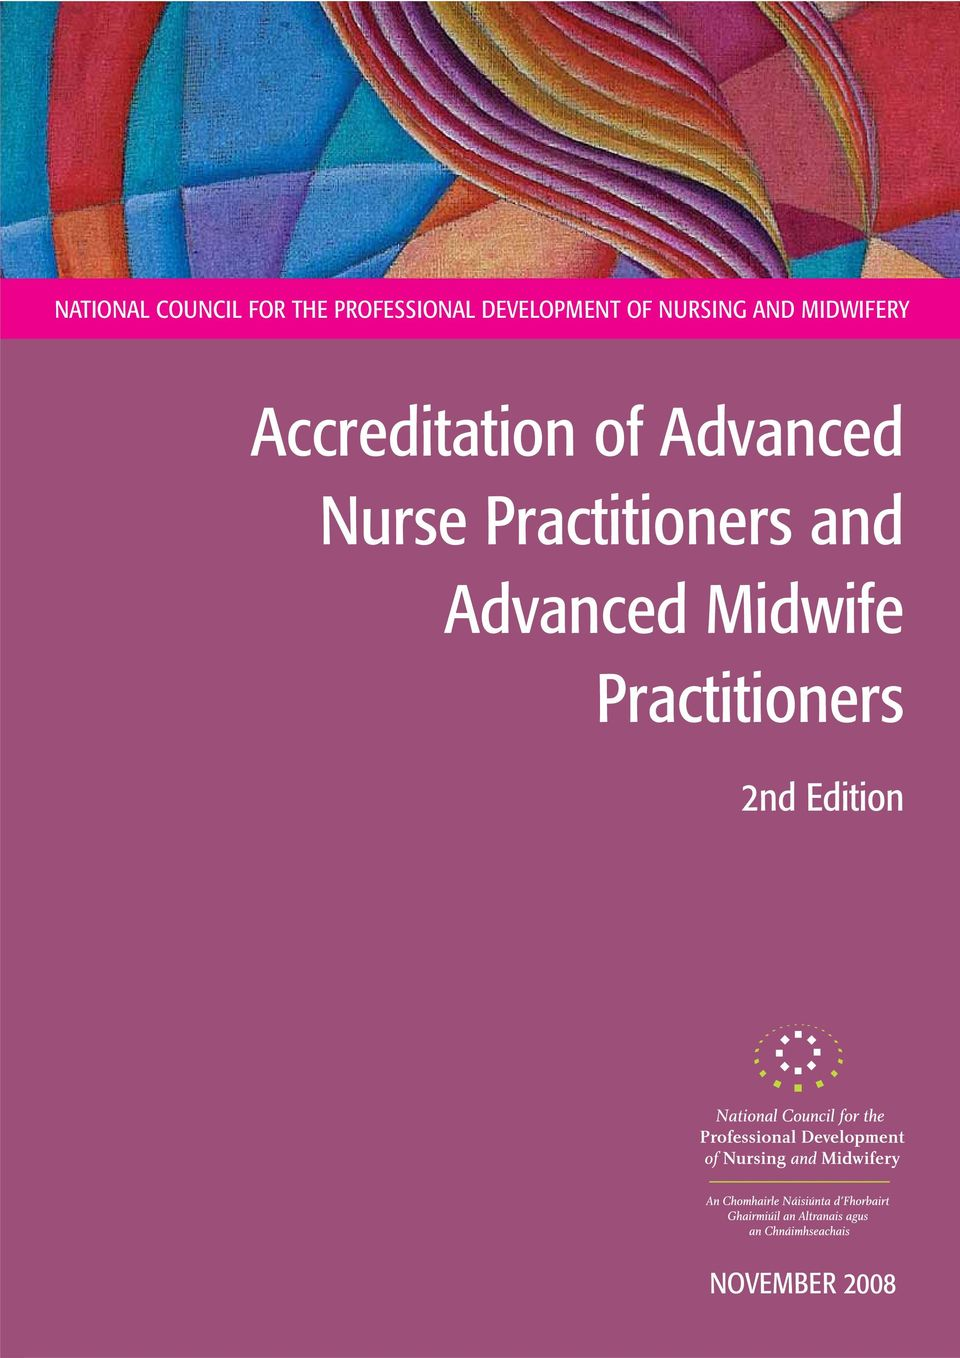 Accreditation of Advanced Nurse Practitioners